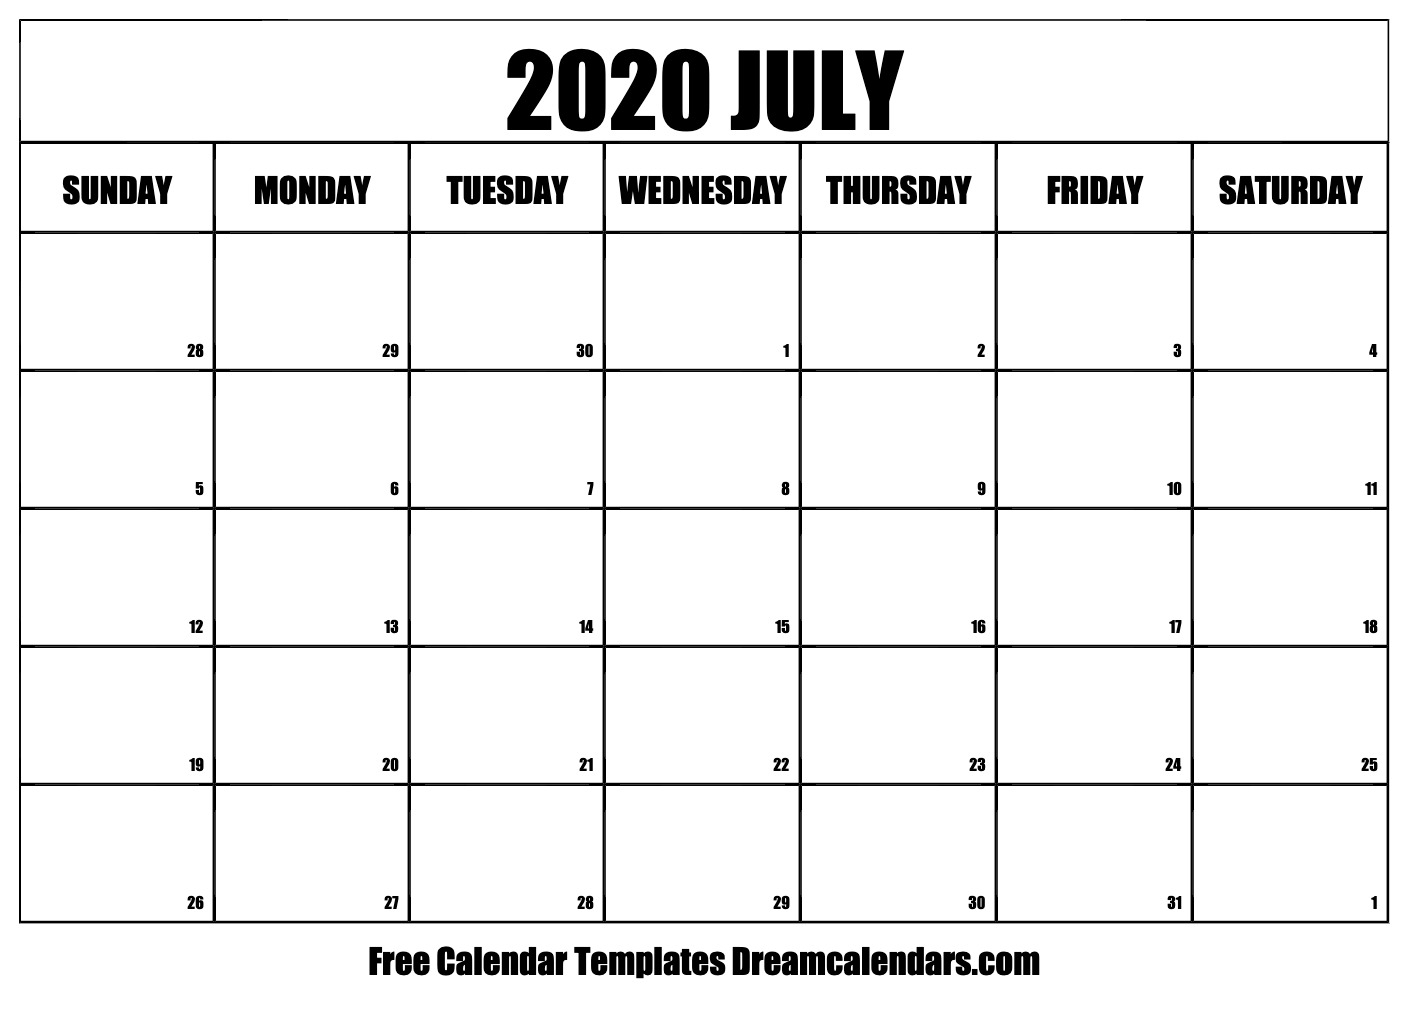 Printable July 2020 Calendar in 2020 Calendar Sunday Through Saturday